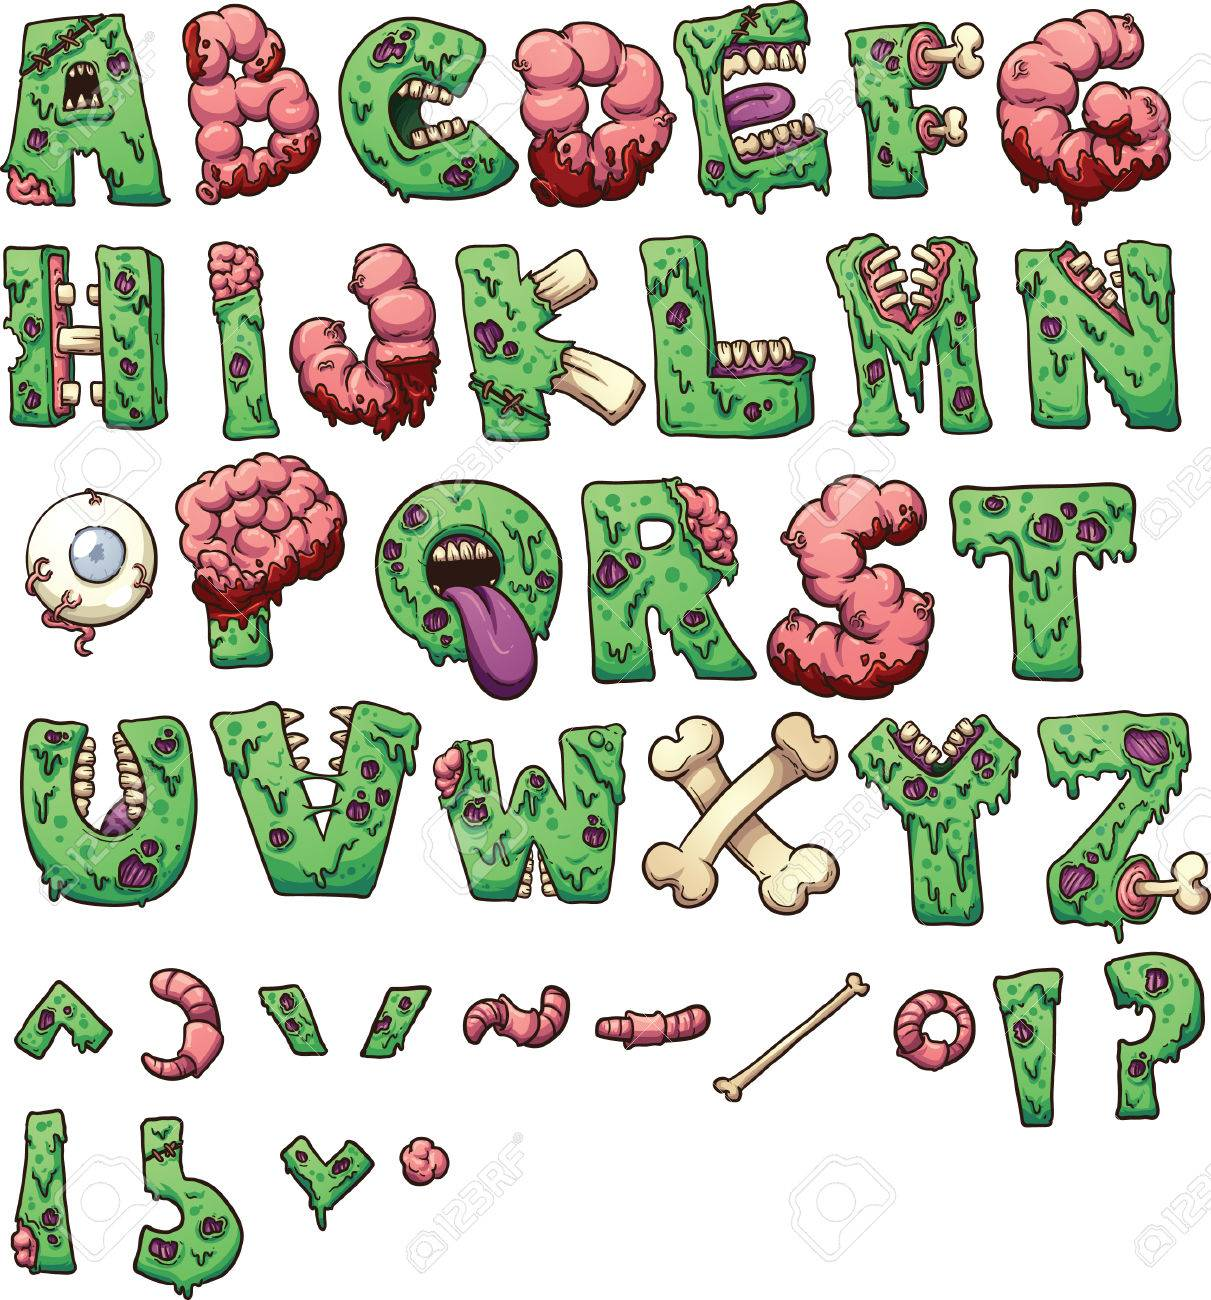 Zombie Letters And Symbols Vector Clip Art Illustration With